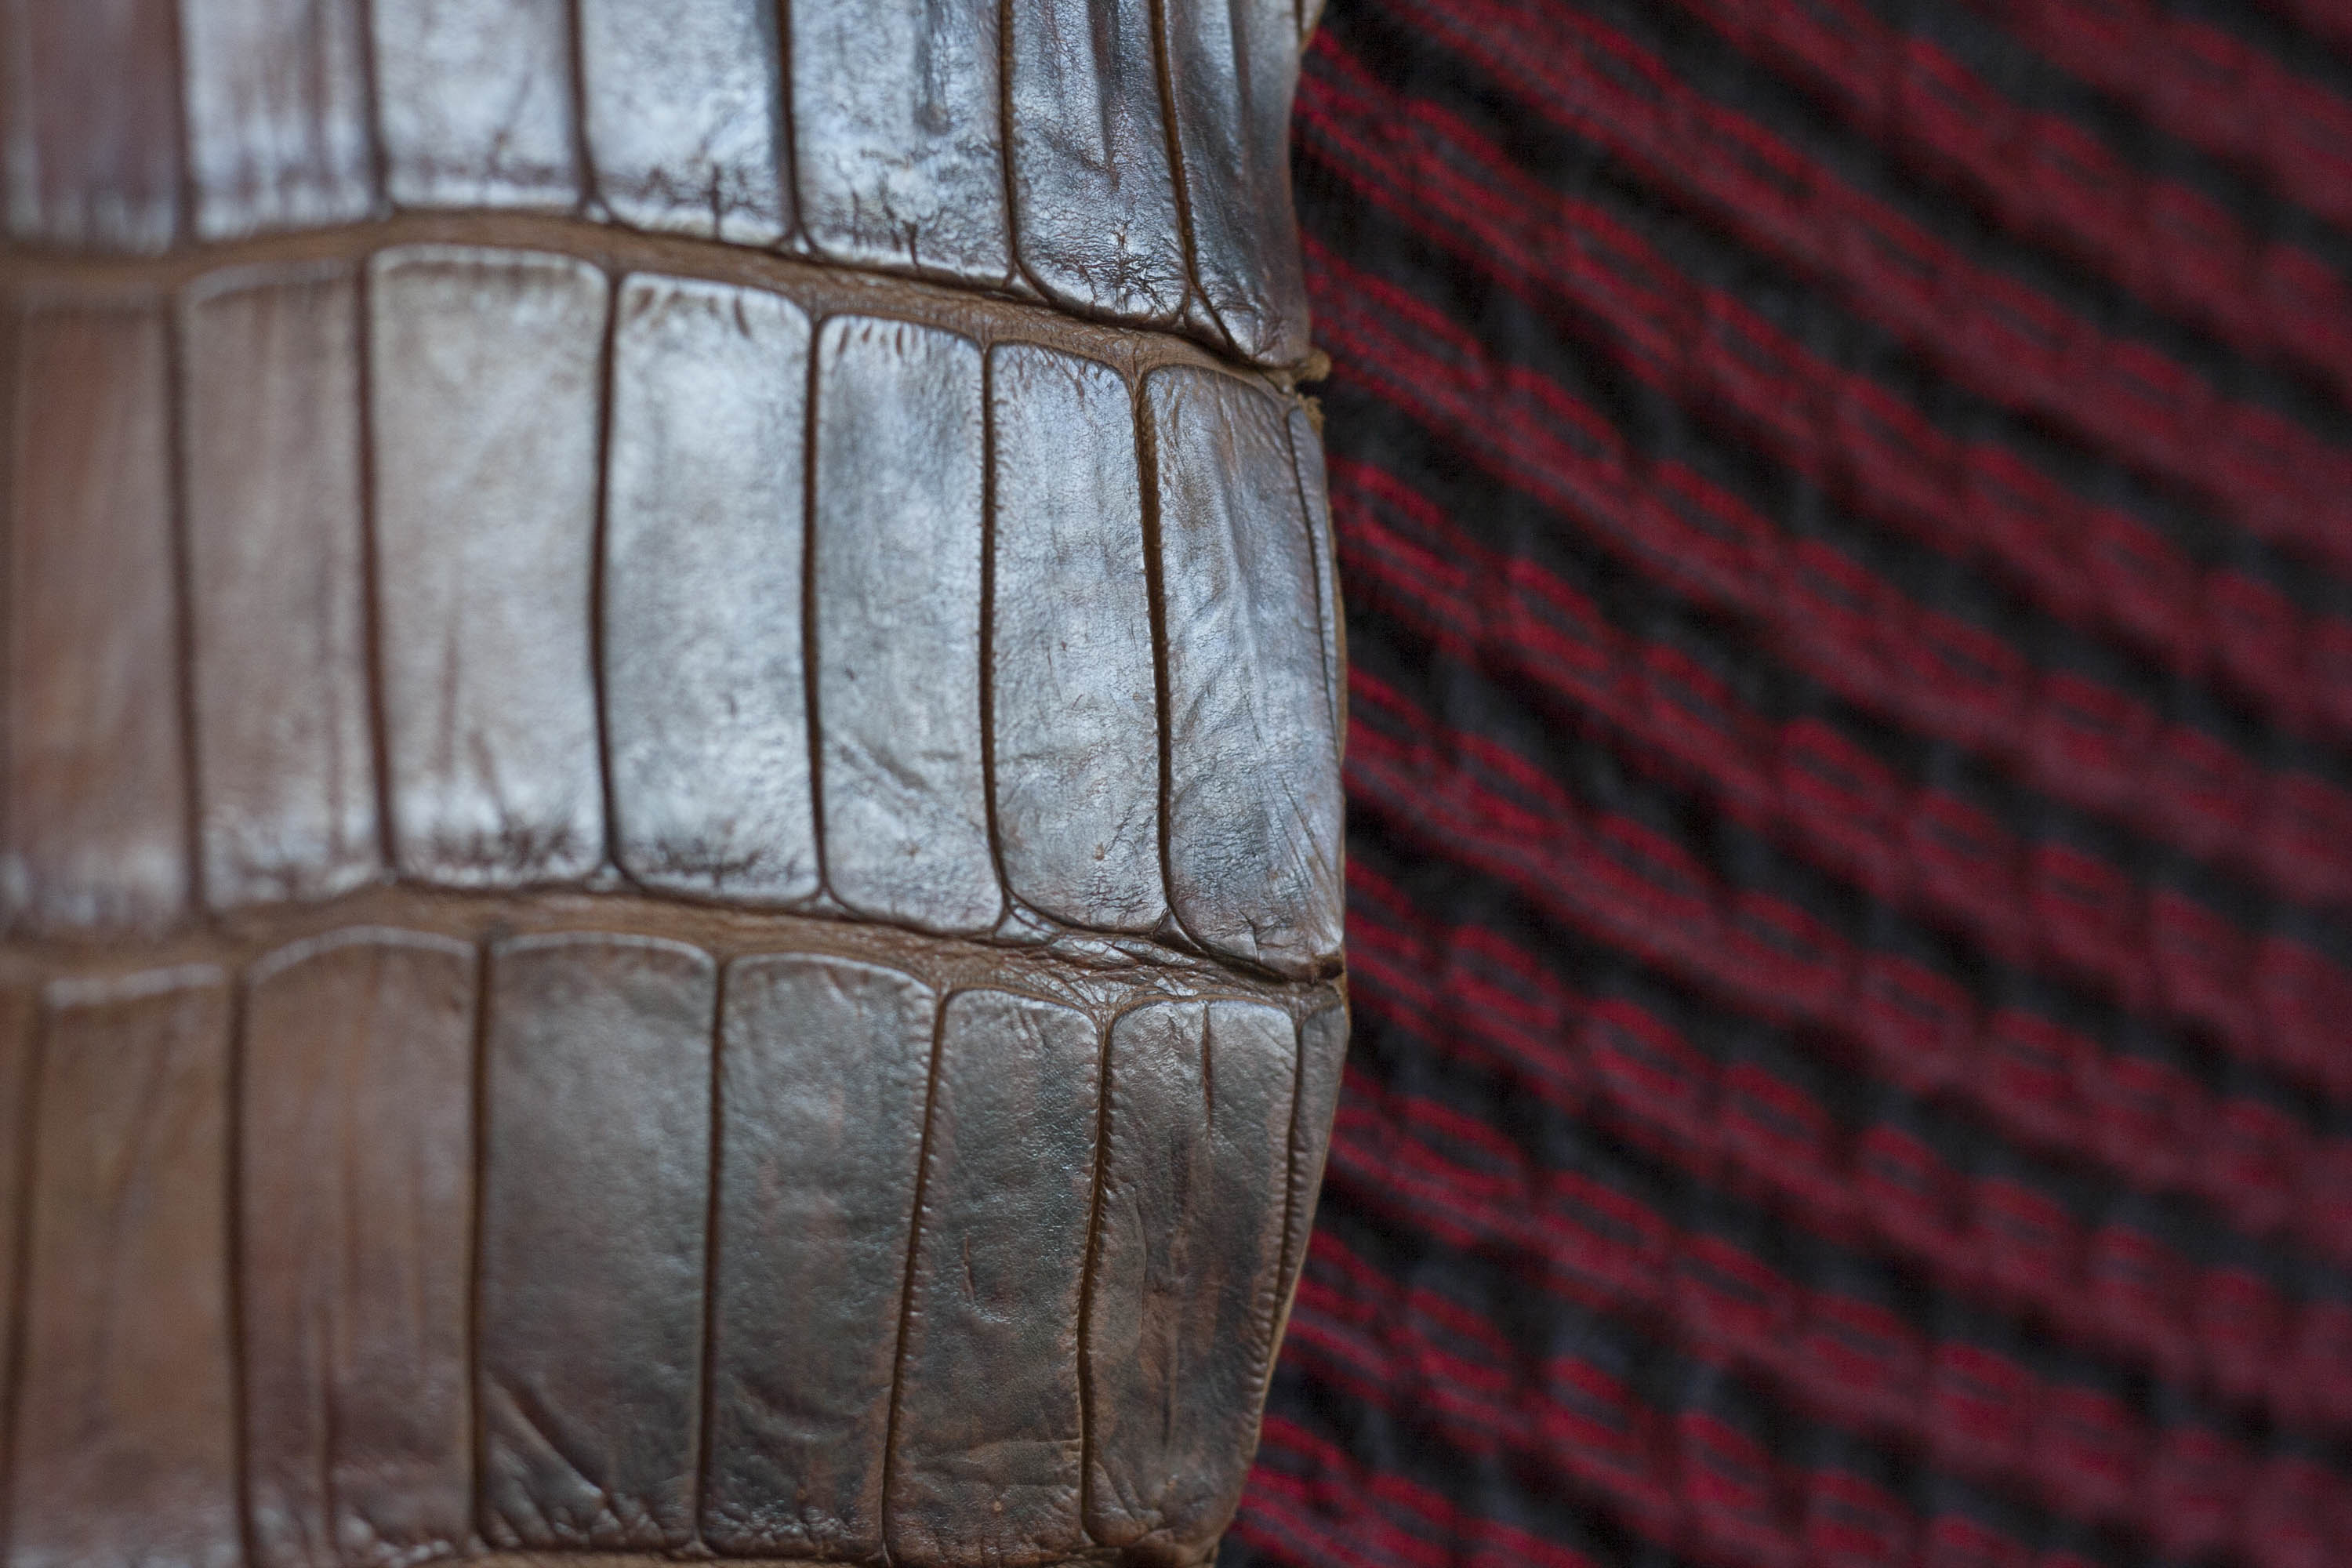 Crocodile leather and knitted textiles in the Nielanell studio, Hoswick, Shetland